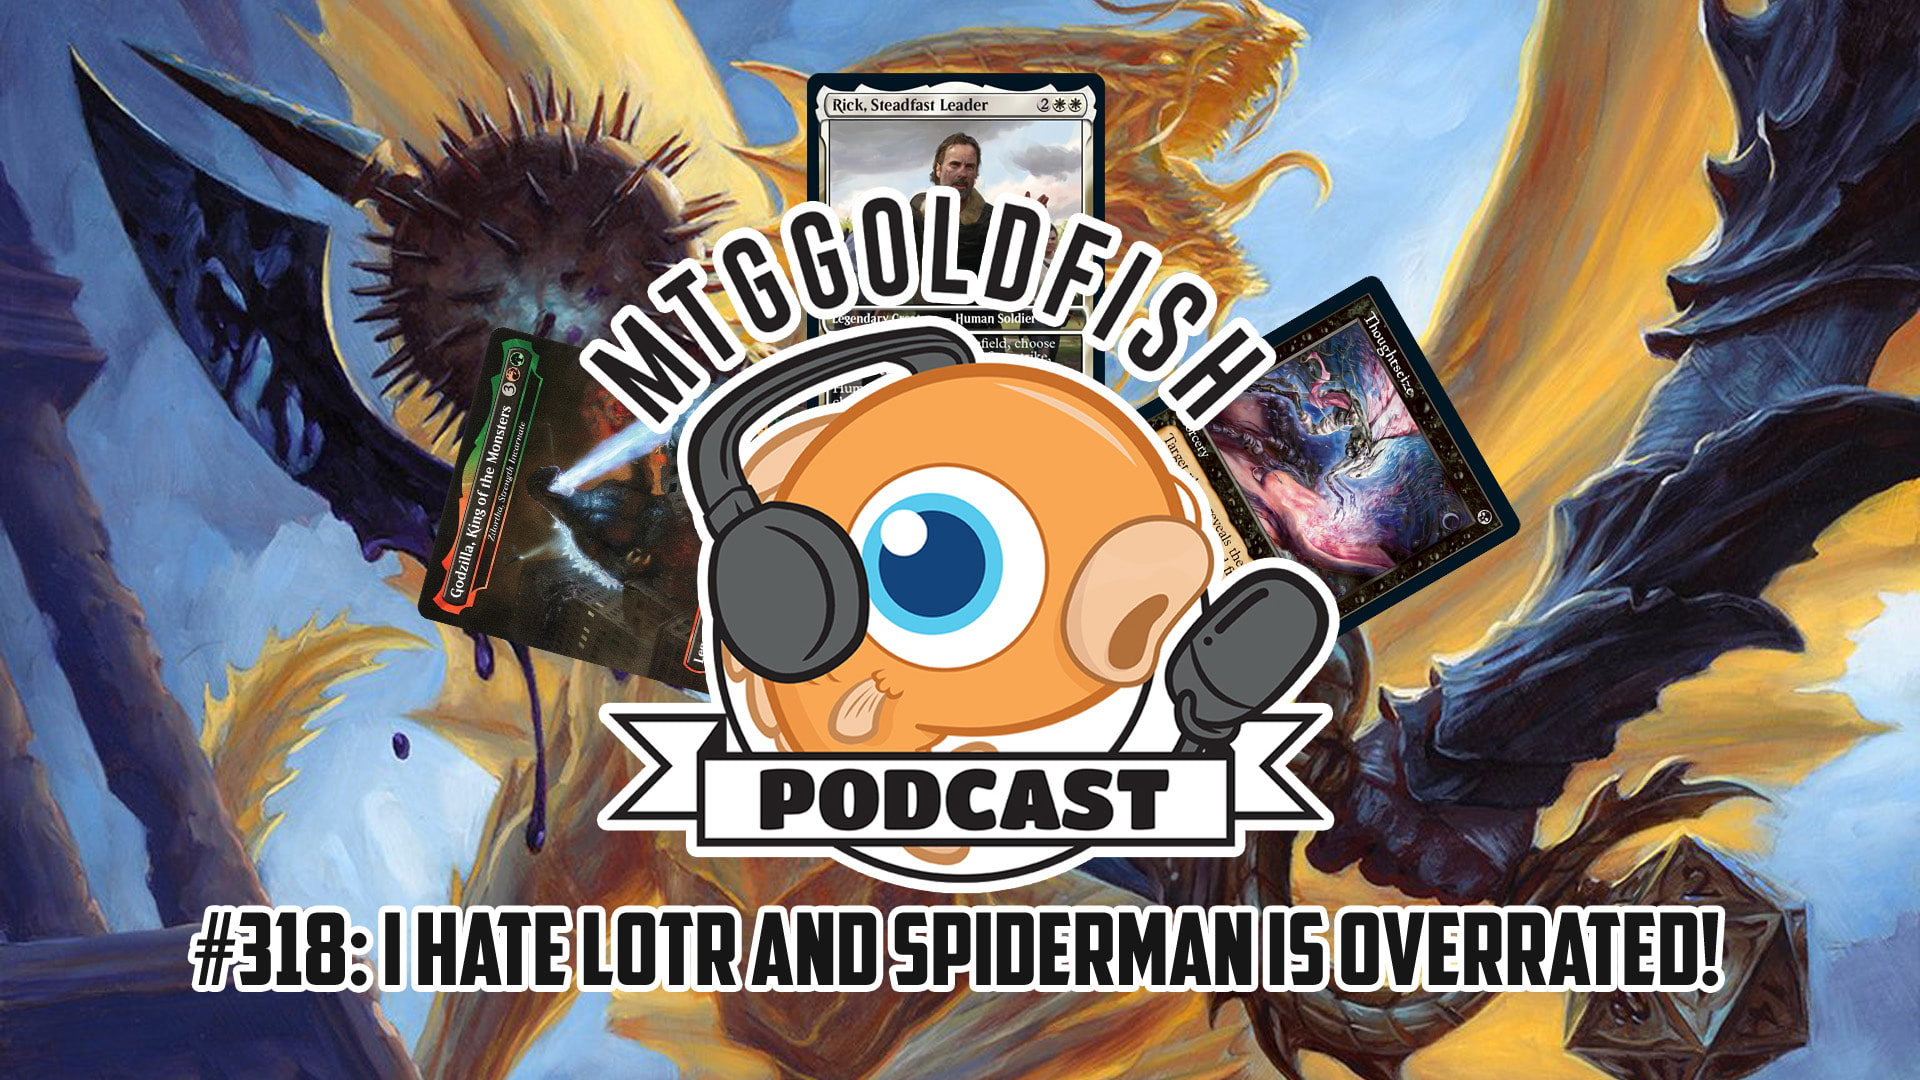 Image for Podcast 318: I Hate Lord of the Rings and Spiderman is Overrated